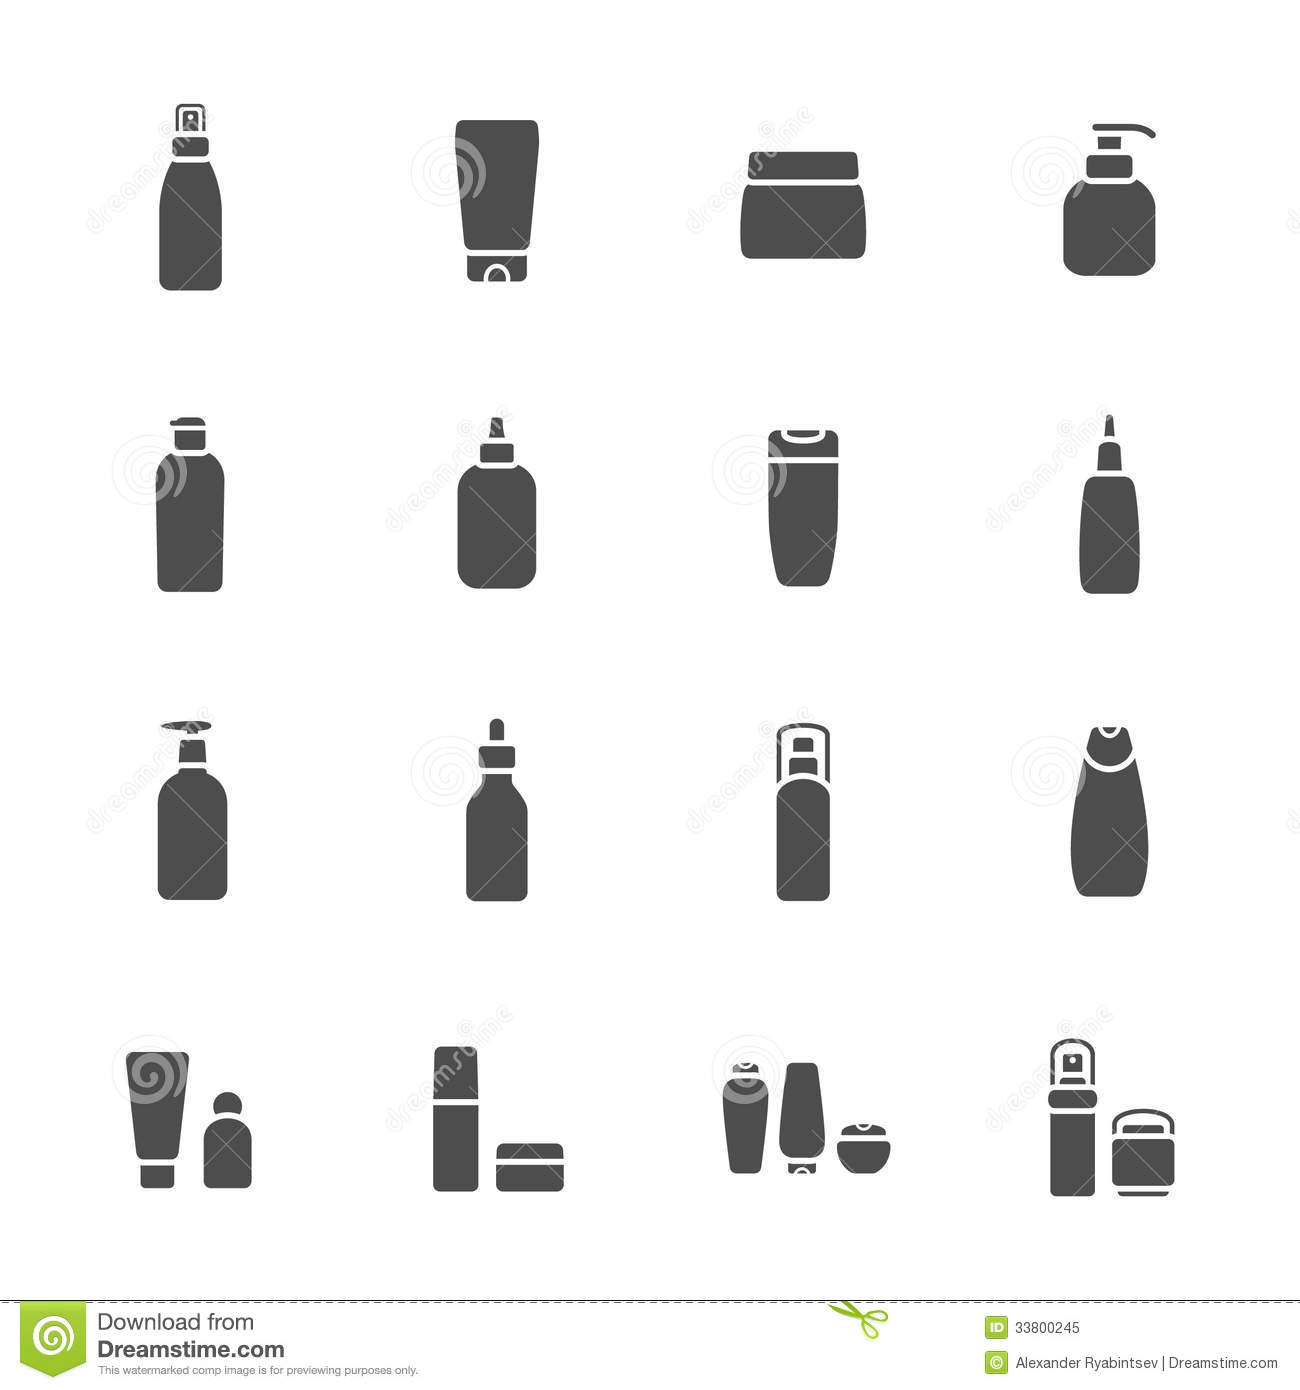 19310 Black Chemical And Physical Icons Vector further Royalty Free Stock Photo Chemistry Icons Set Scientific Research Equipment Pictograms Collection Black Graphic Design Isolated Vector Illustration Image40838255 moreover Hydro Flask Launches New Wine Bottle And Wine Tumbler Products furthermore Beware Pirates furthermore Royalty Free Stock Photo Cosmetic Flasks Icon Set Image33800245. on flask design